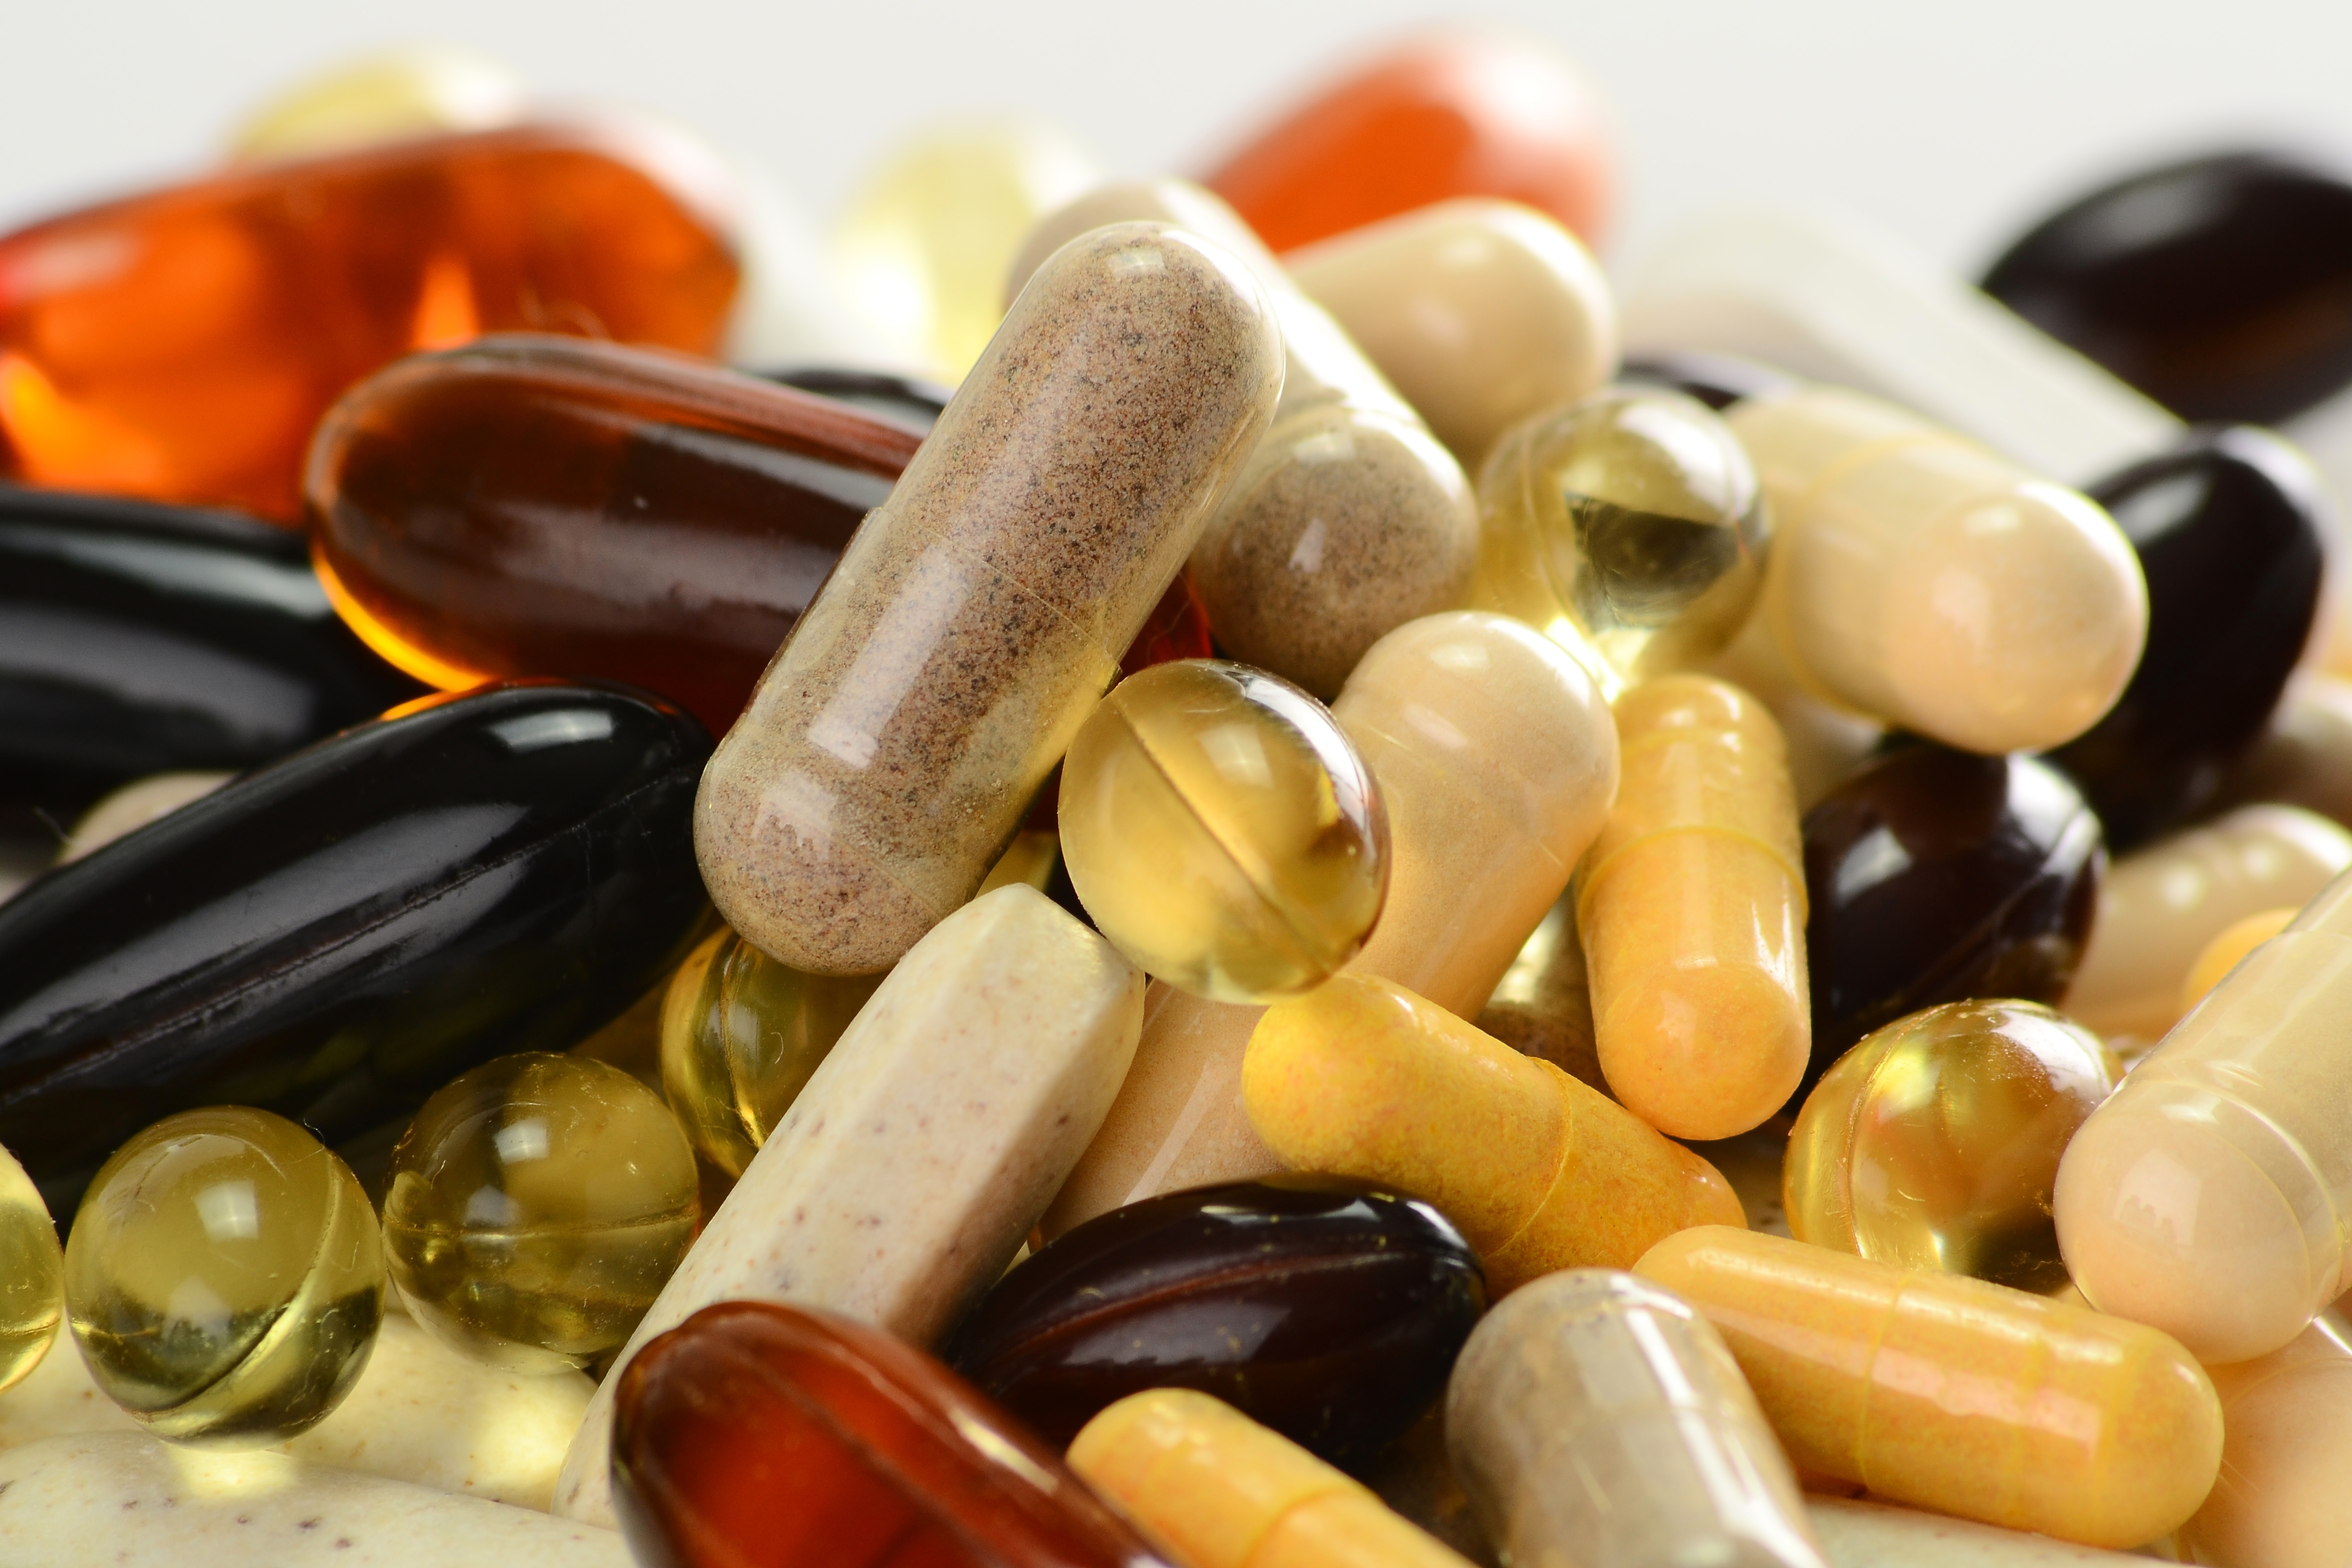 The Other Ingredients: Potentially Harmful Ingredients Hidden In Your Supplements